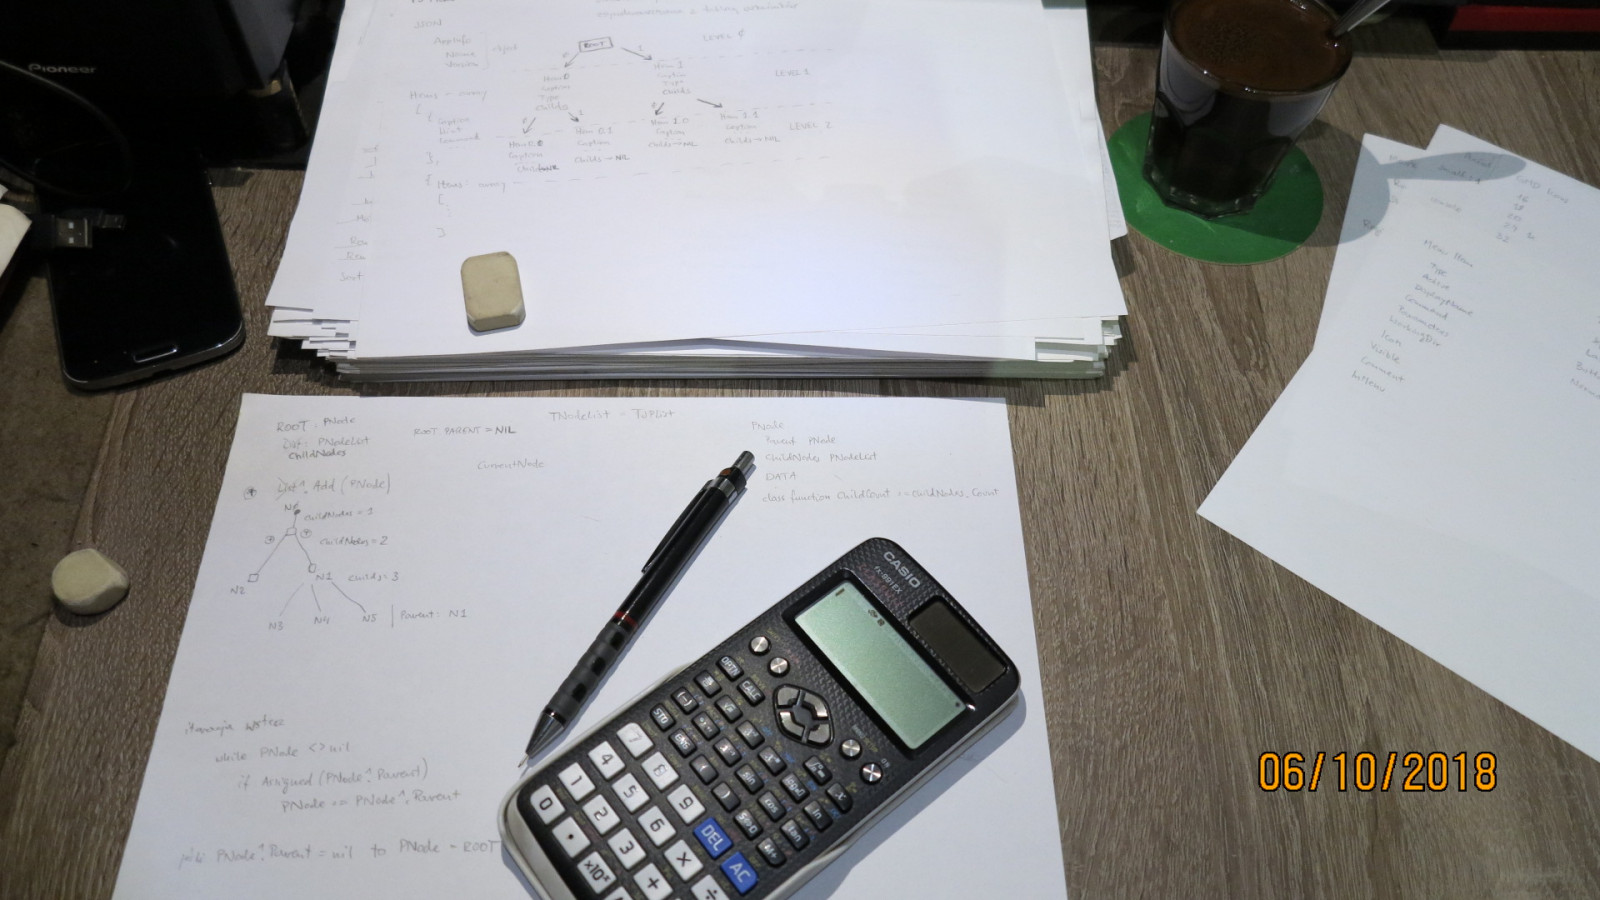 The most important tools in the programmer's work: coffee, sheets of paper, pencil, eraser and hexadecimal calculator.